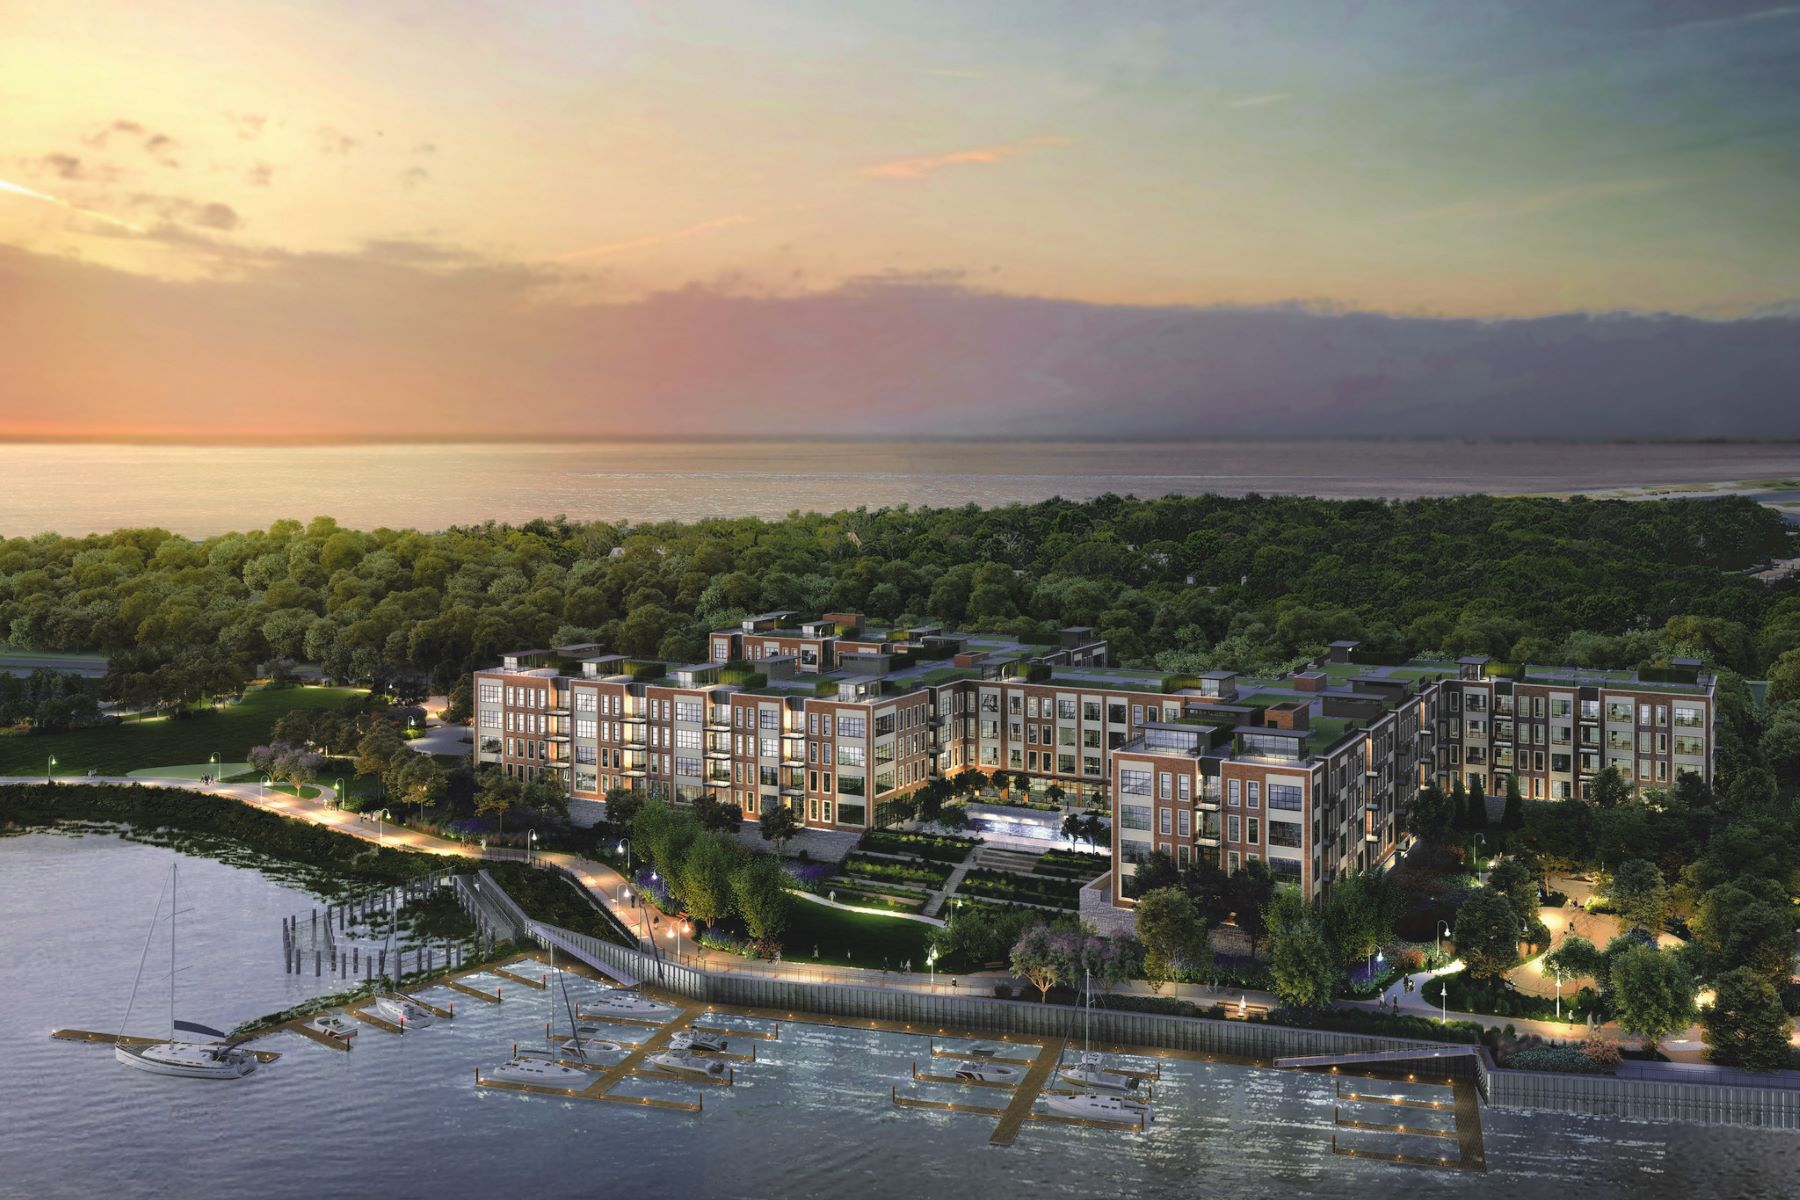 Condominiums for Sale at 100 Garvies Point Rd , 1309, Glen Cove, NY 11542 100 Garvies Point Rd 1309 Glen Cove, New York 11542 United States